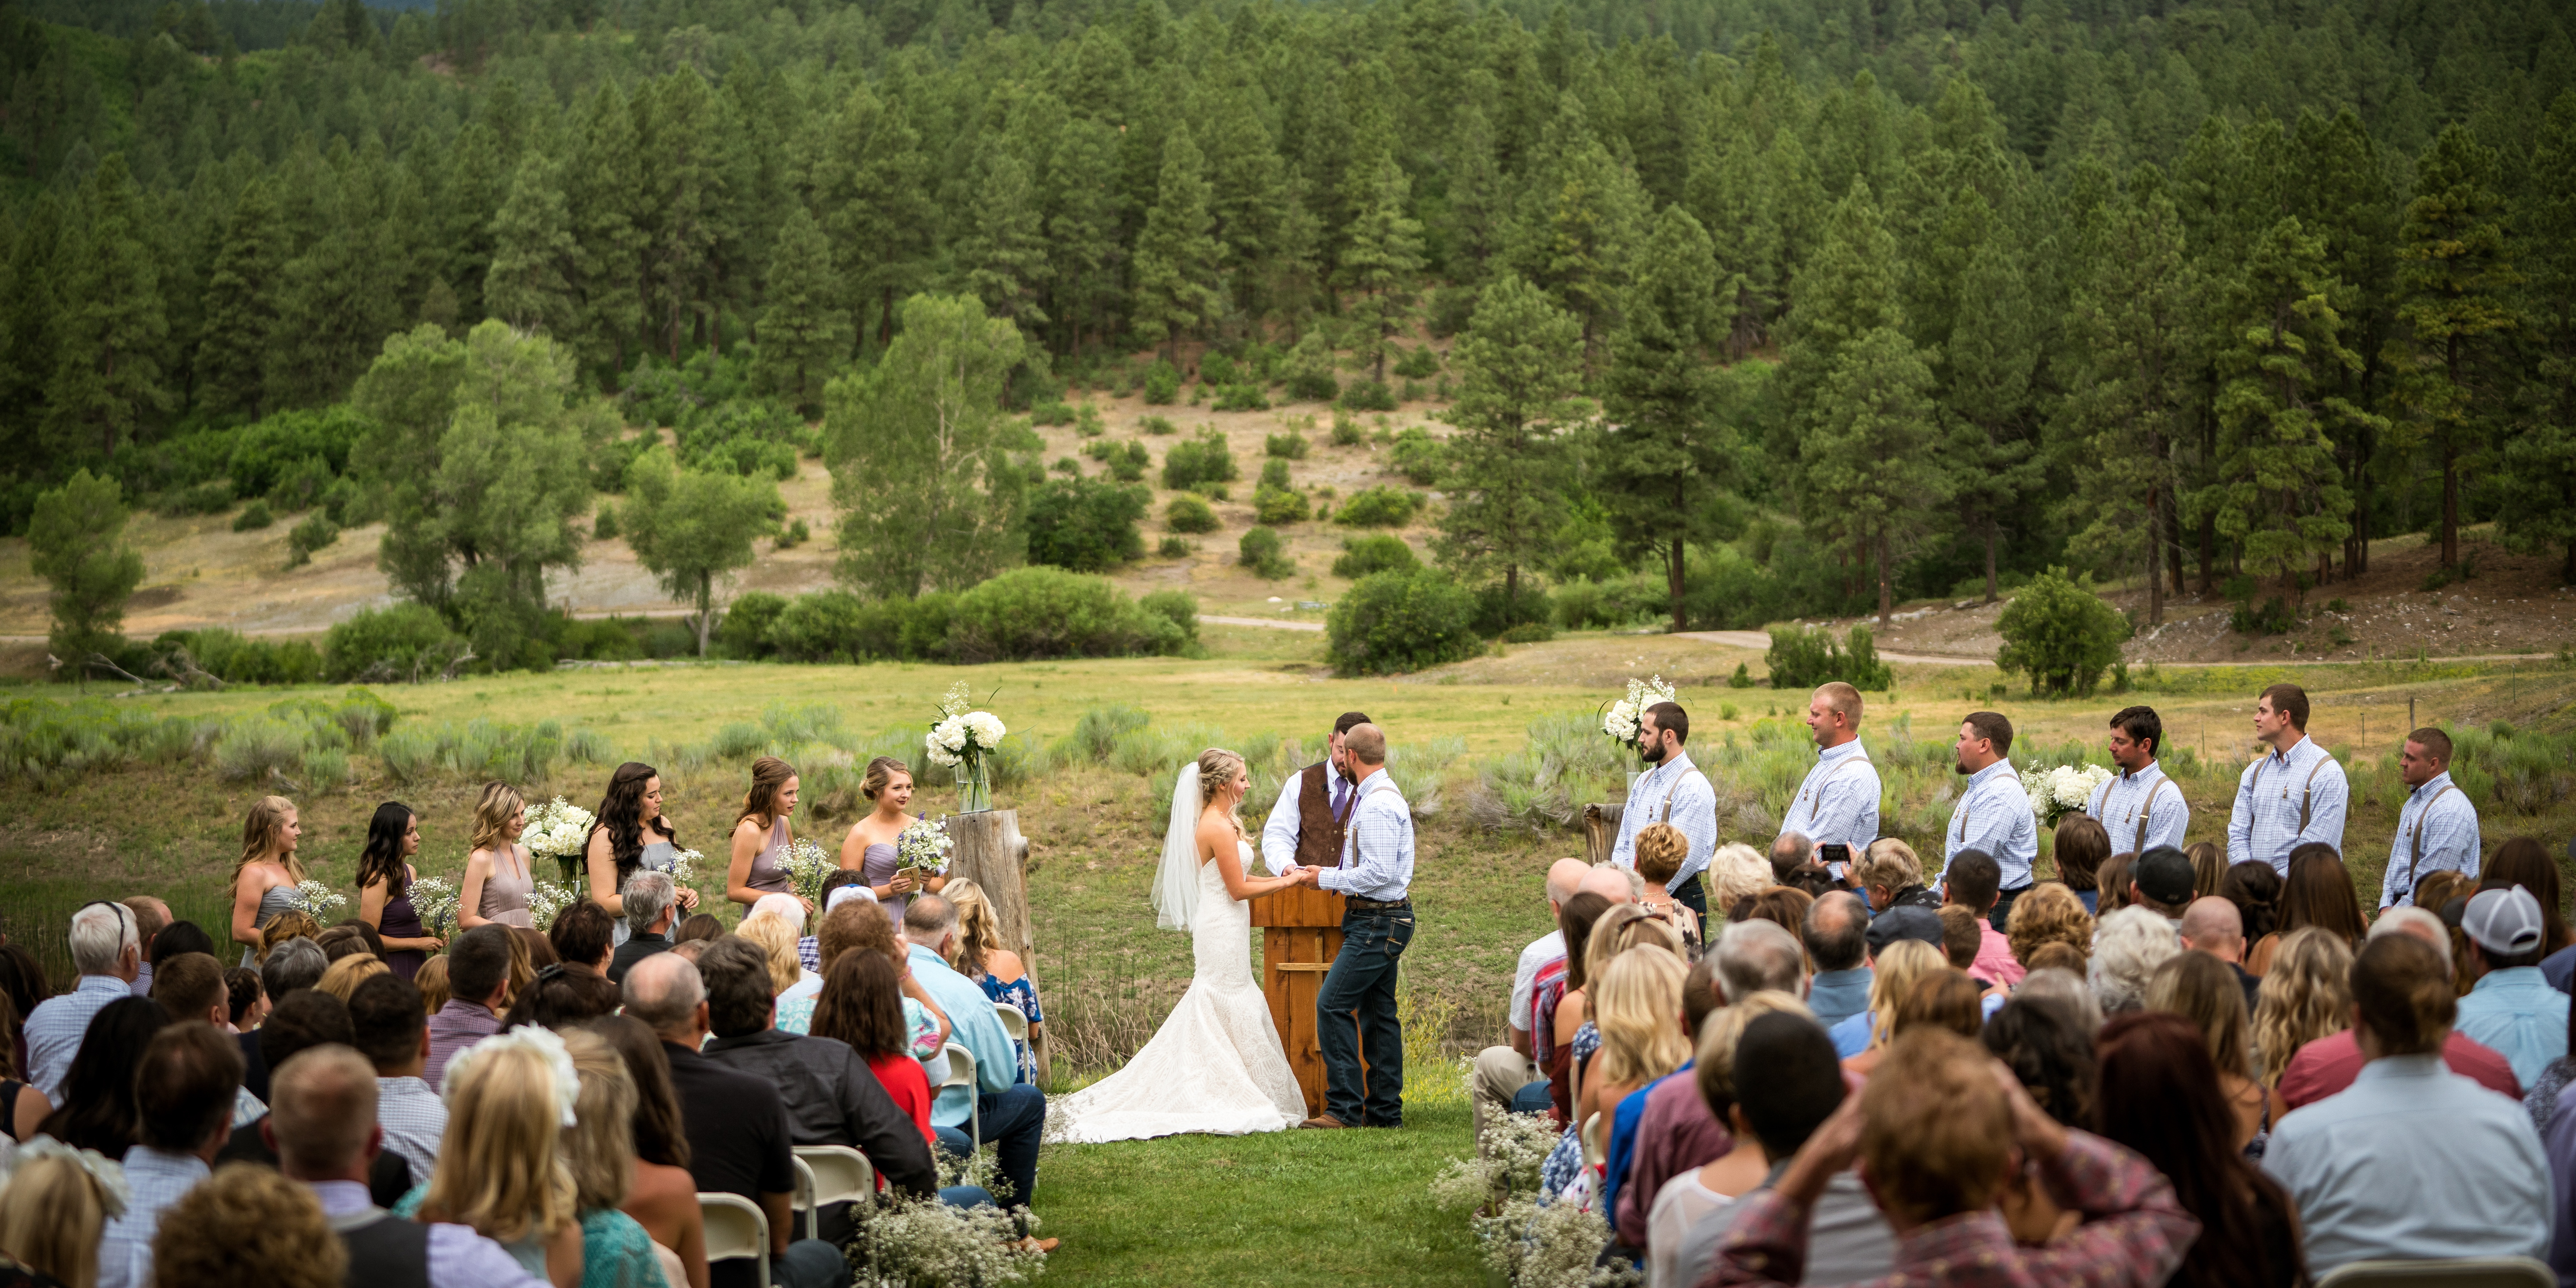 Wedding Ceremonies Durango